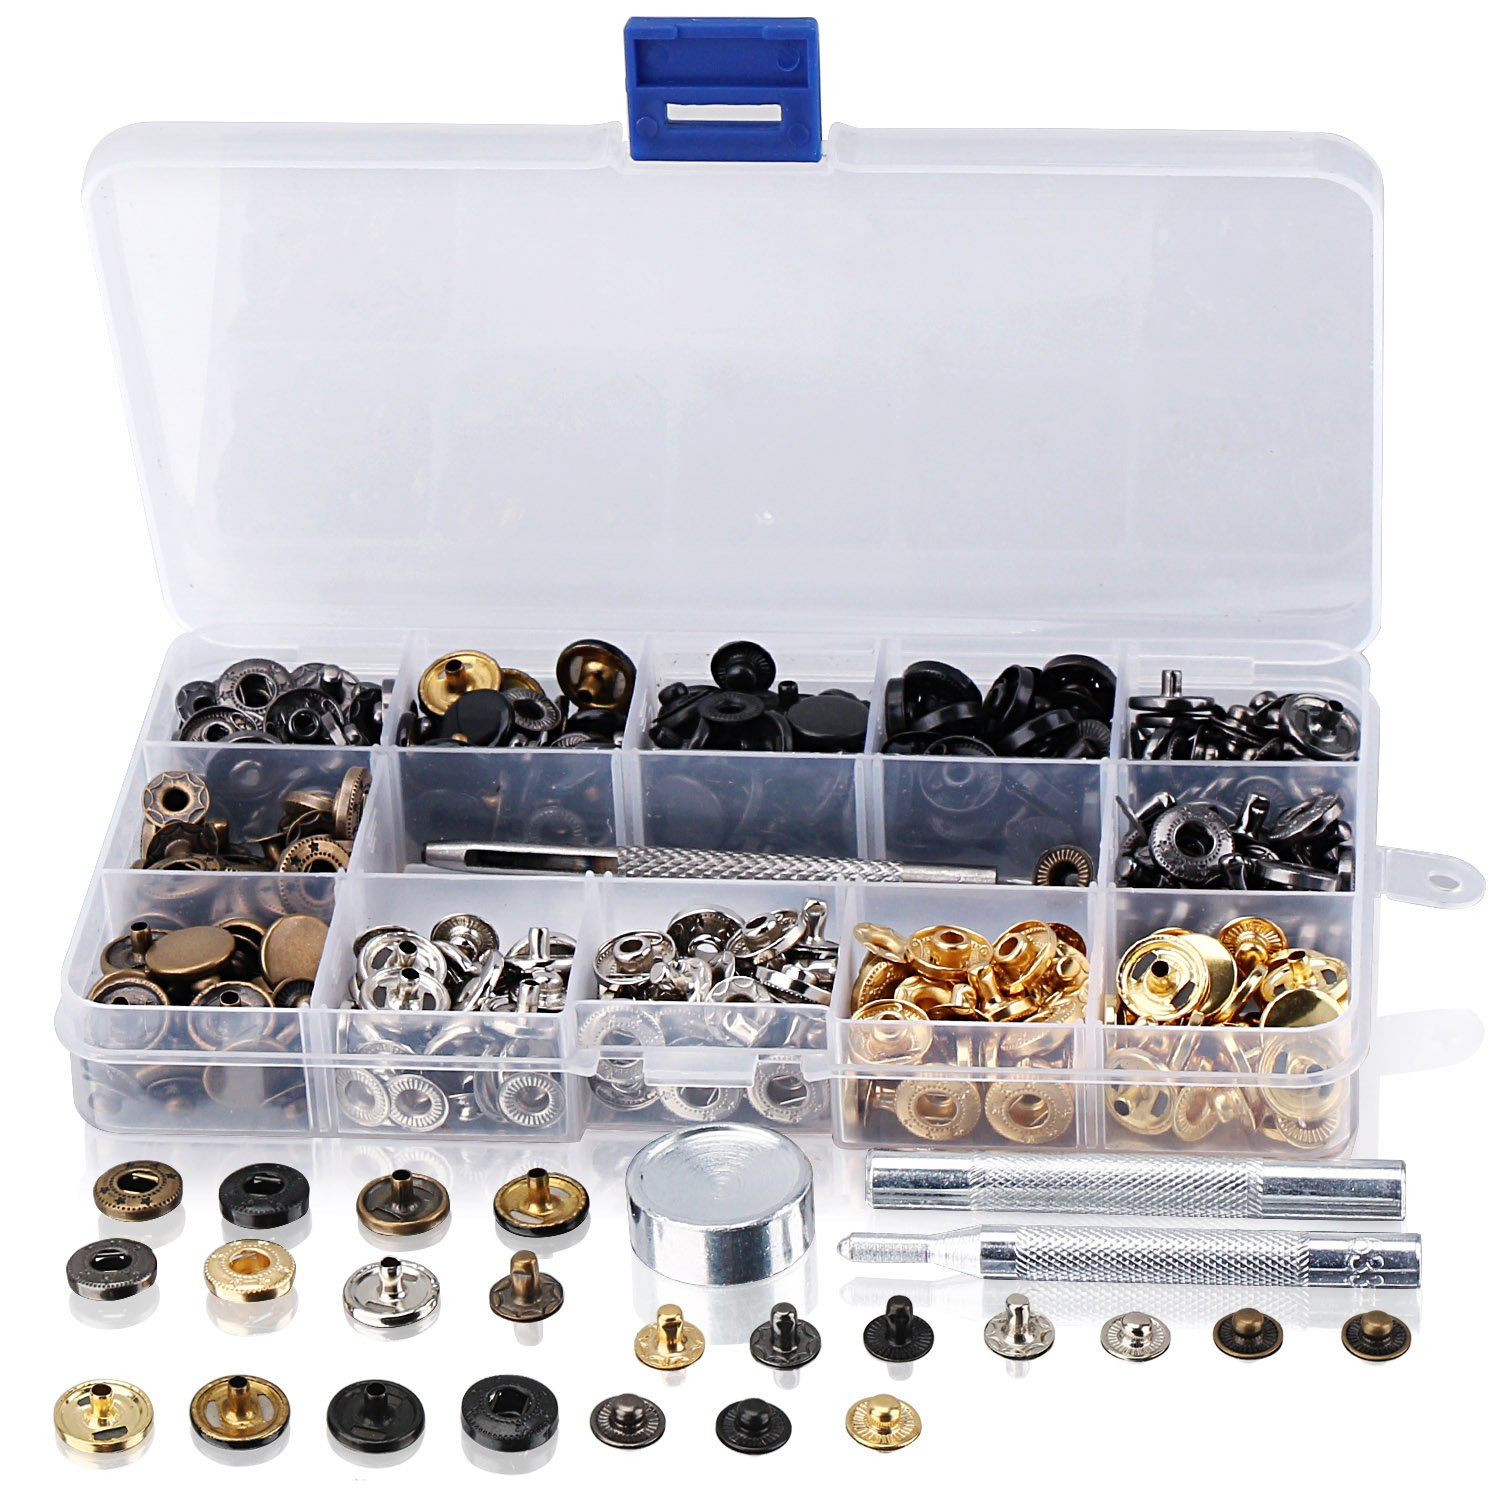 DROK 120 Sets Copper Snap Buttons, 6 Colors Snap Fastener Kit, Leather Craft Clothing Fabric Snap Rivets Press Studs, 633# 12mm-in-Diameter Rivet Setter with Punch Fixing Tool for DIY